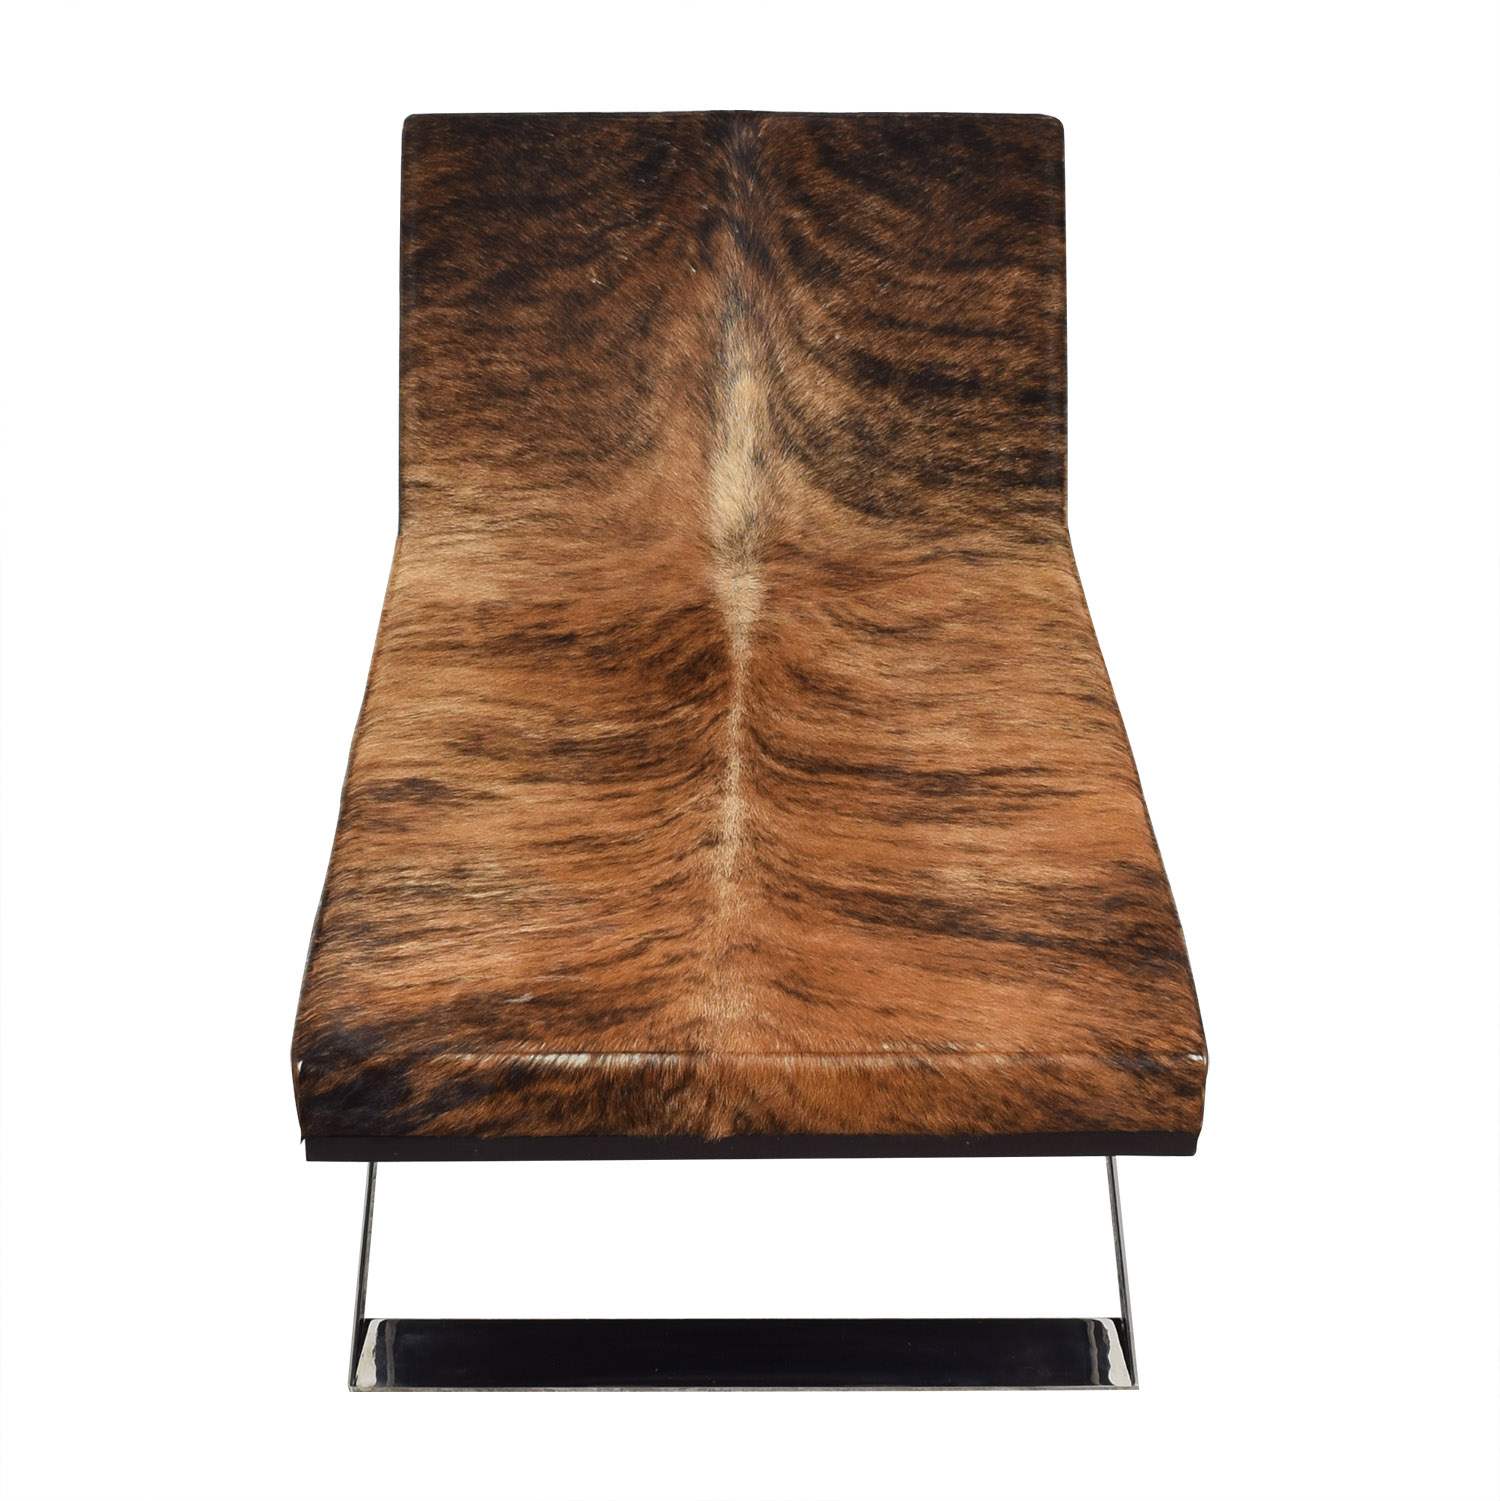 Moura Starr Kalup Chaise Lounge in Araca Cow Hide sale